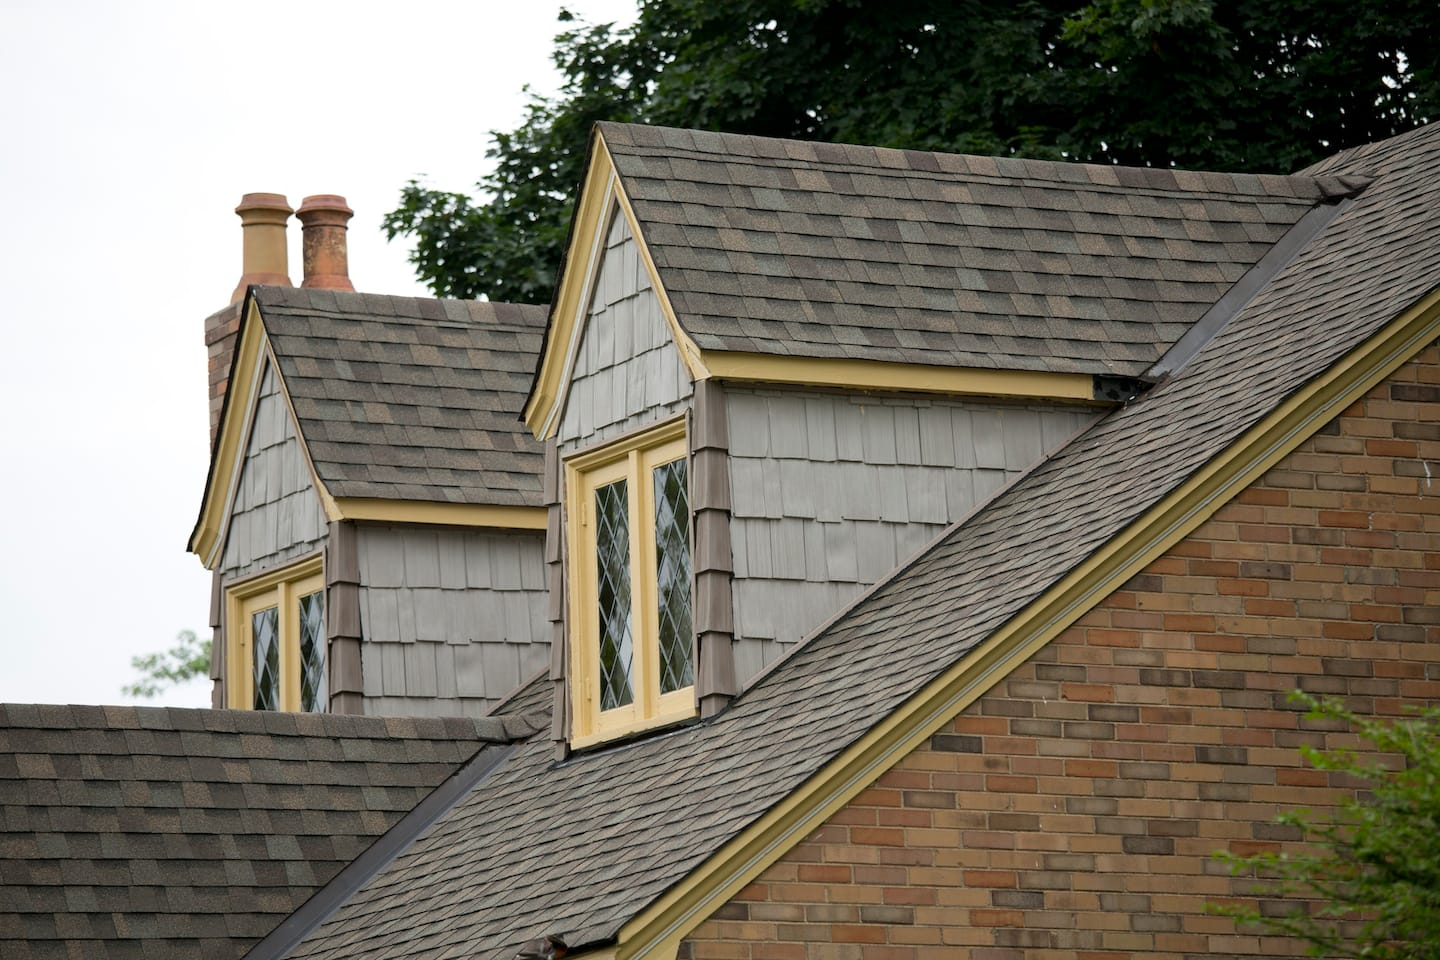 How much does it cost to build a dormer window for How much does it cost to build a dormer window